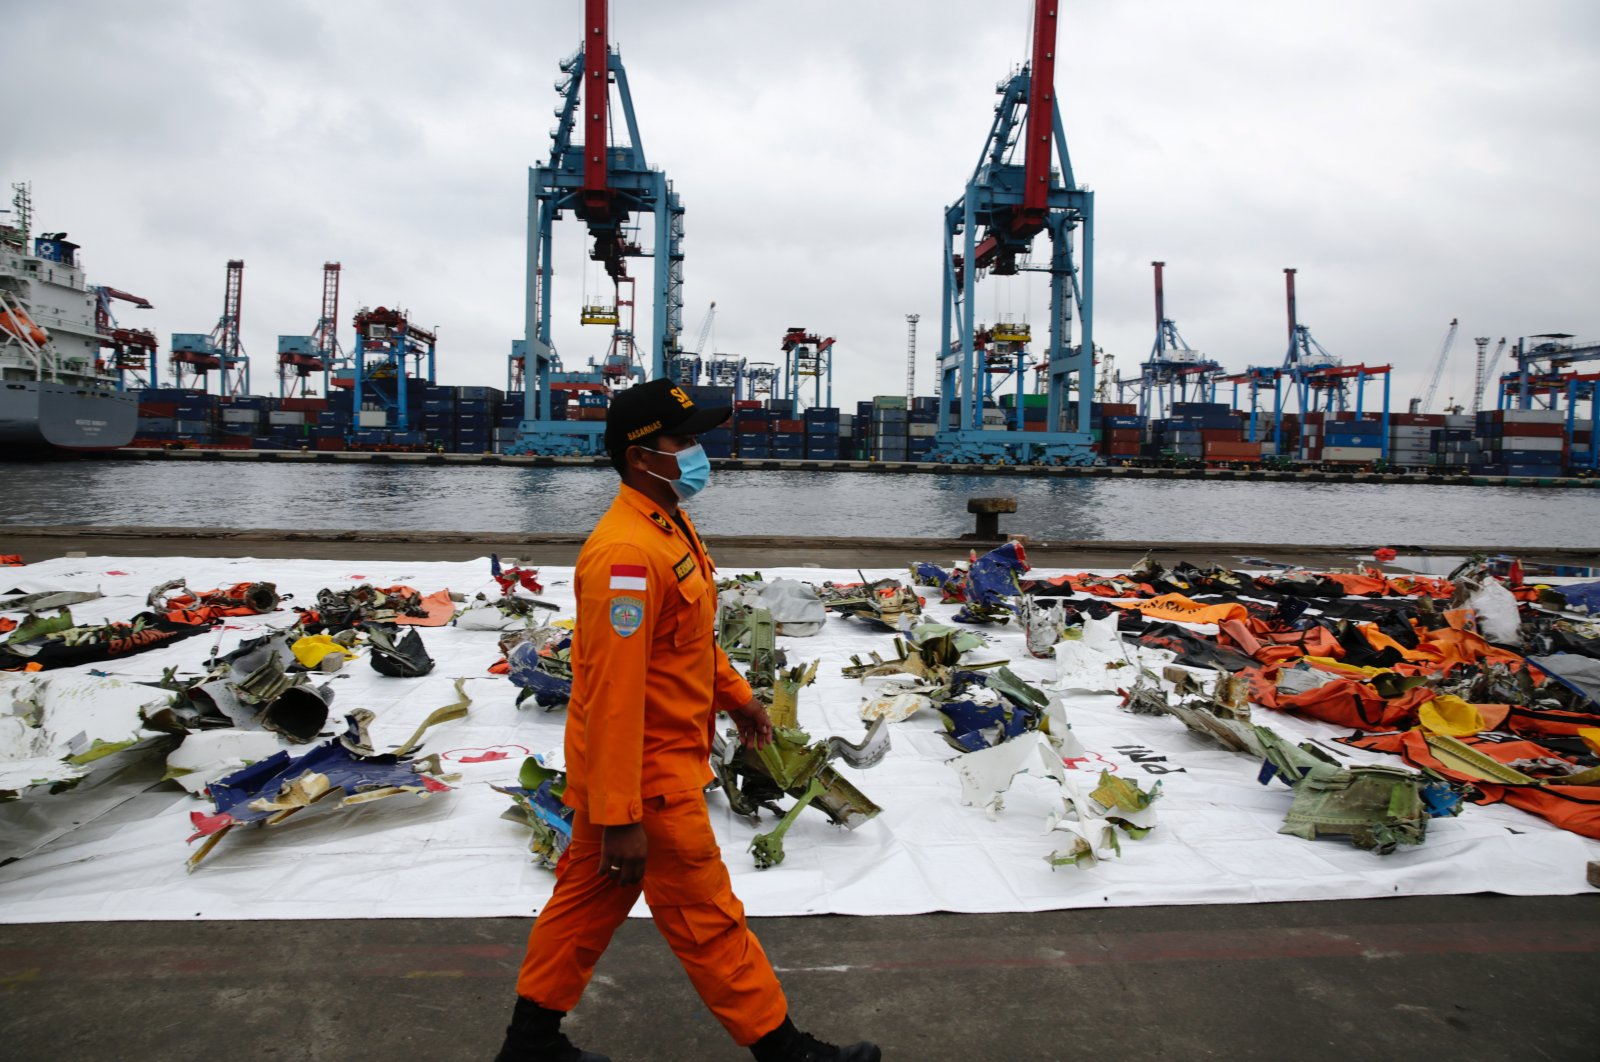 A member of Indonesia's National Search and Rescue Agency (BASARNAS) walks past the debris of Sriwijaya Air flight SJ 182 plane recovered from the crash site in the waters off Jakarta at Tanjung Priok port in Jakarta, Indonesia, Jan. 17, 2021. (EPA Photo)